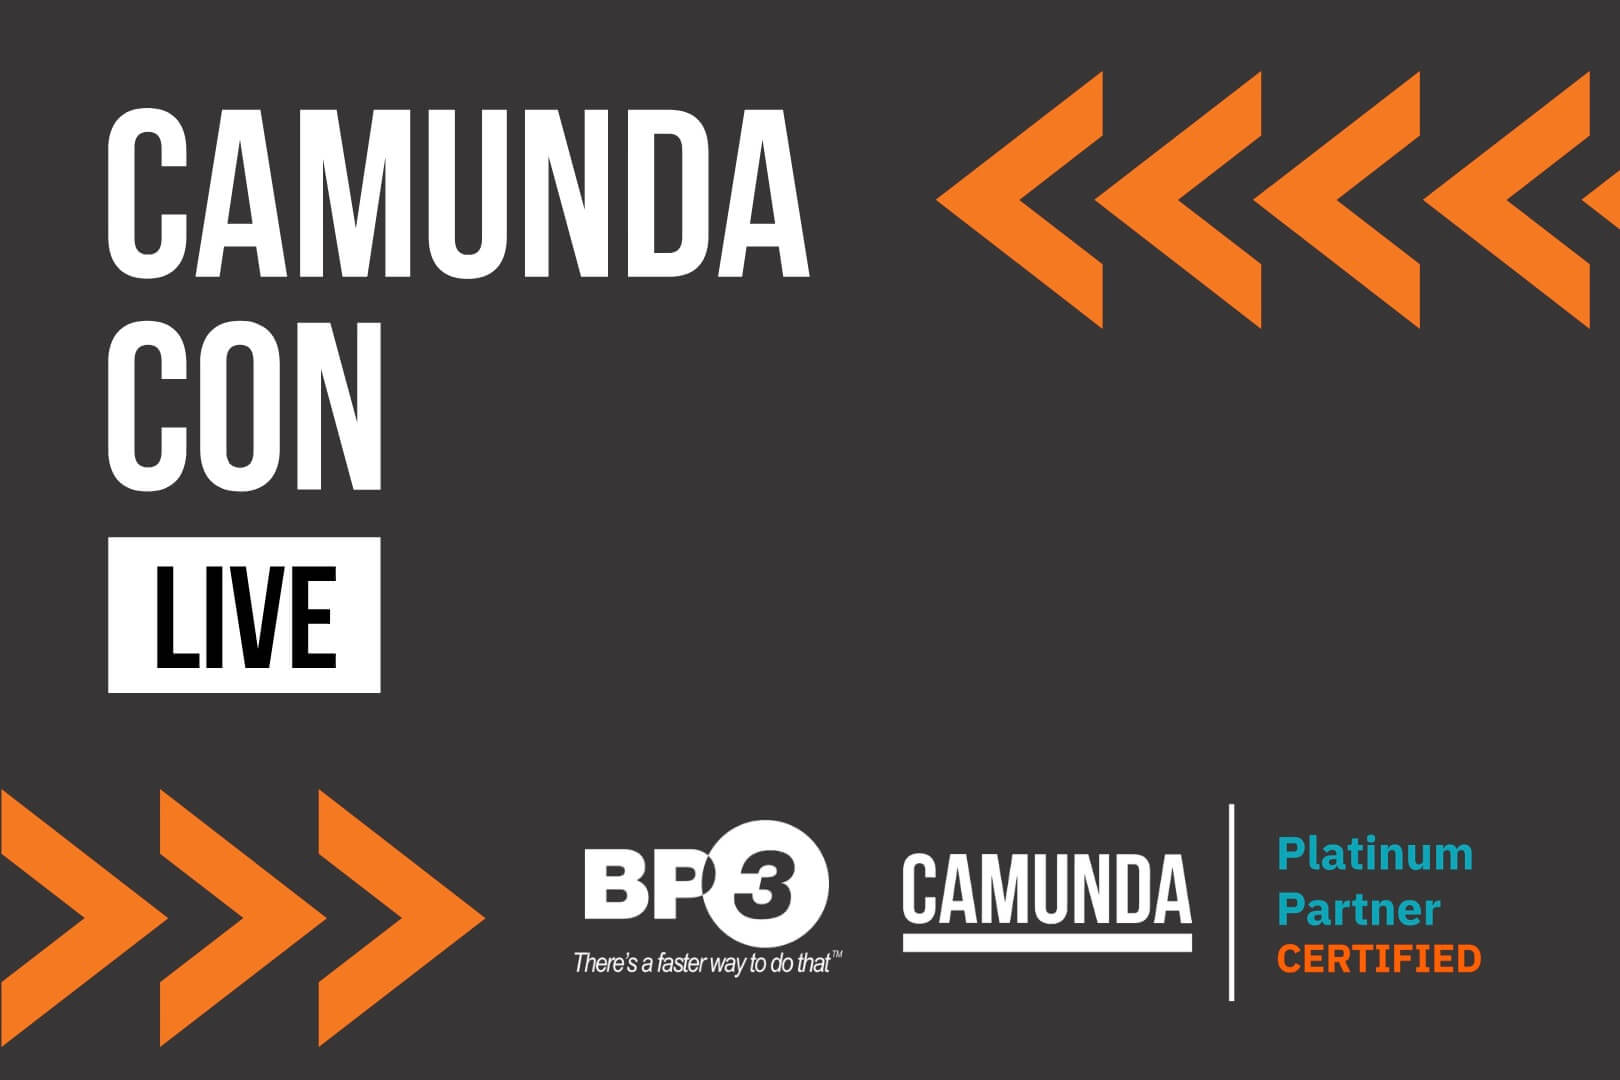 Two weeks ago I had some time to watch CamundaCon live. It was broadcast live from Berlin so in my early morning hours I got to catch a lot of the content. There is so much great learning from everyone that was part of CamundaCon. I highly recommend you take a look at the recordings to learn more about why we automate, why to start small, and how to get the quick win.